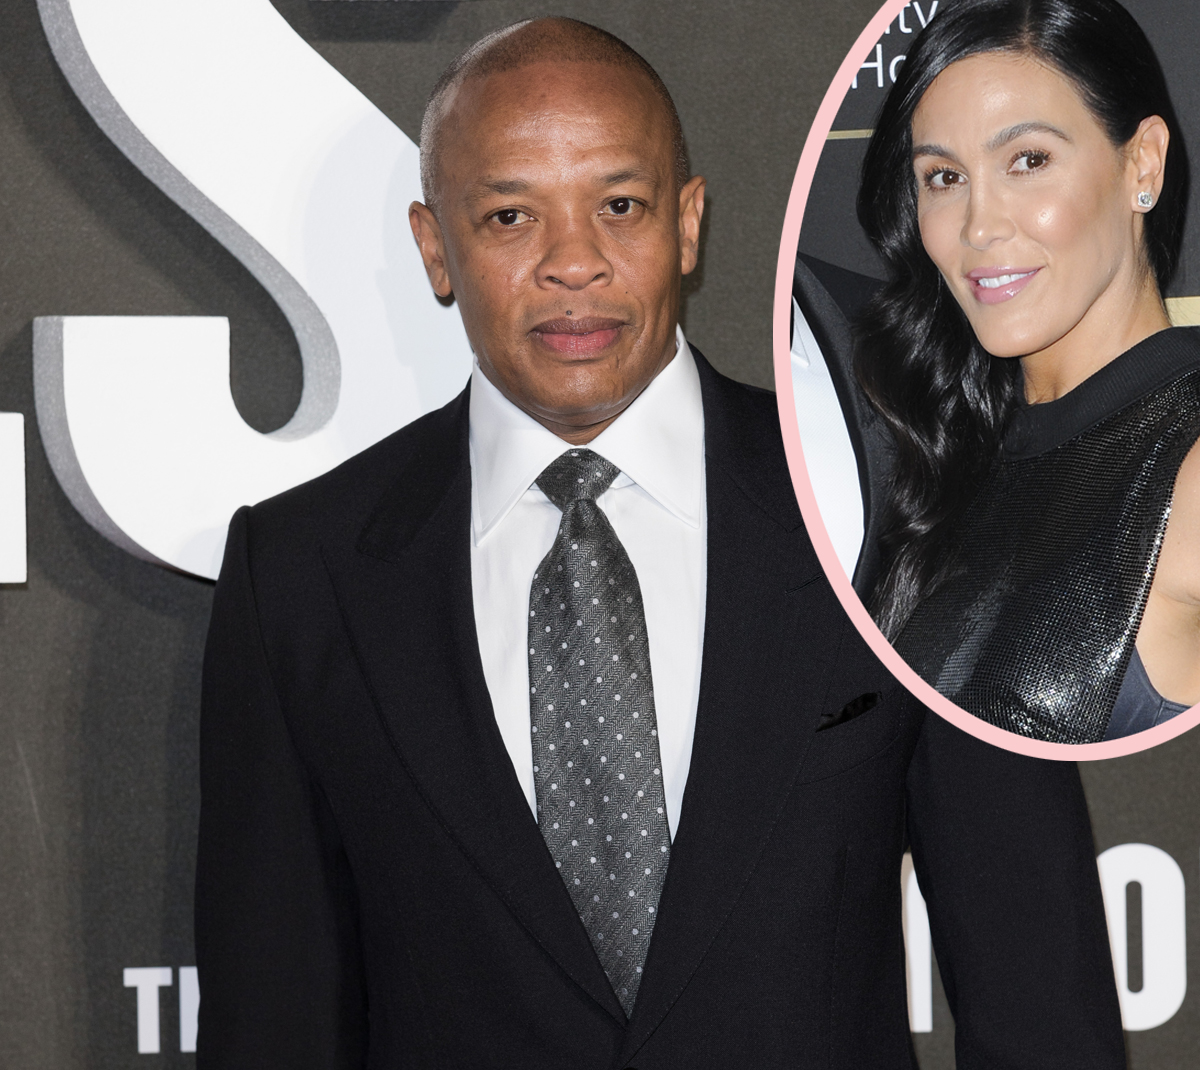 Dr. Dre Calls Estranged Wife A Greedy WHAT In New Diss Track!?! Damn!